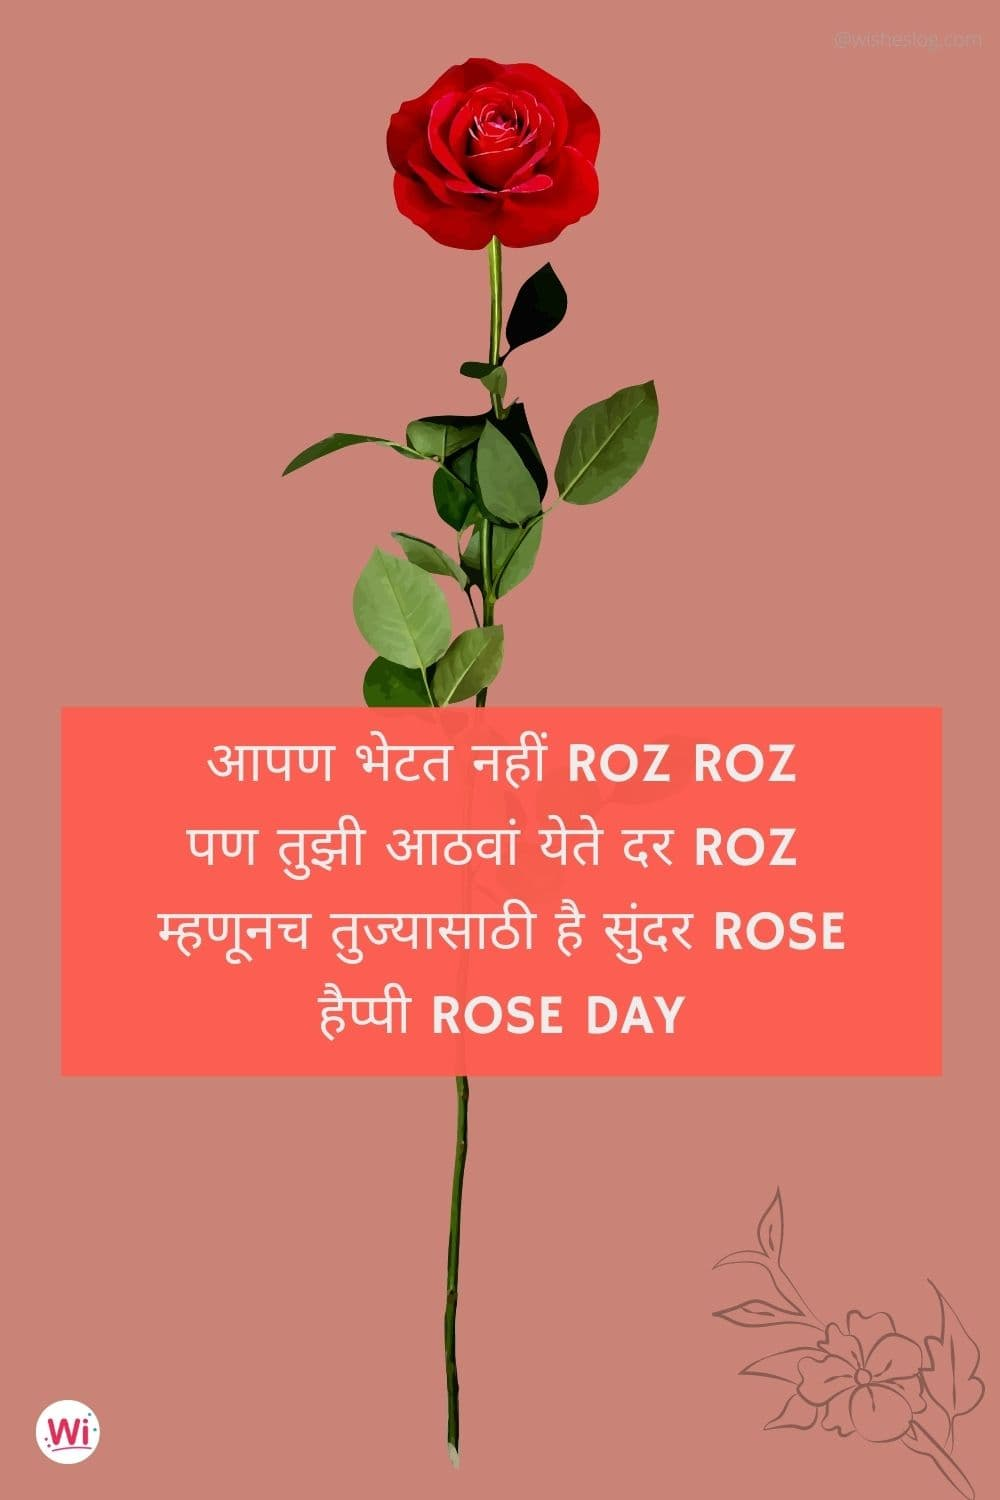 rose day whatsapp status in marathi